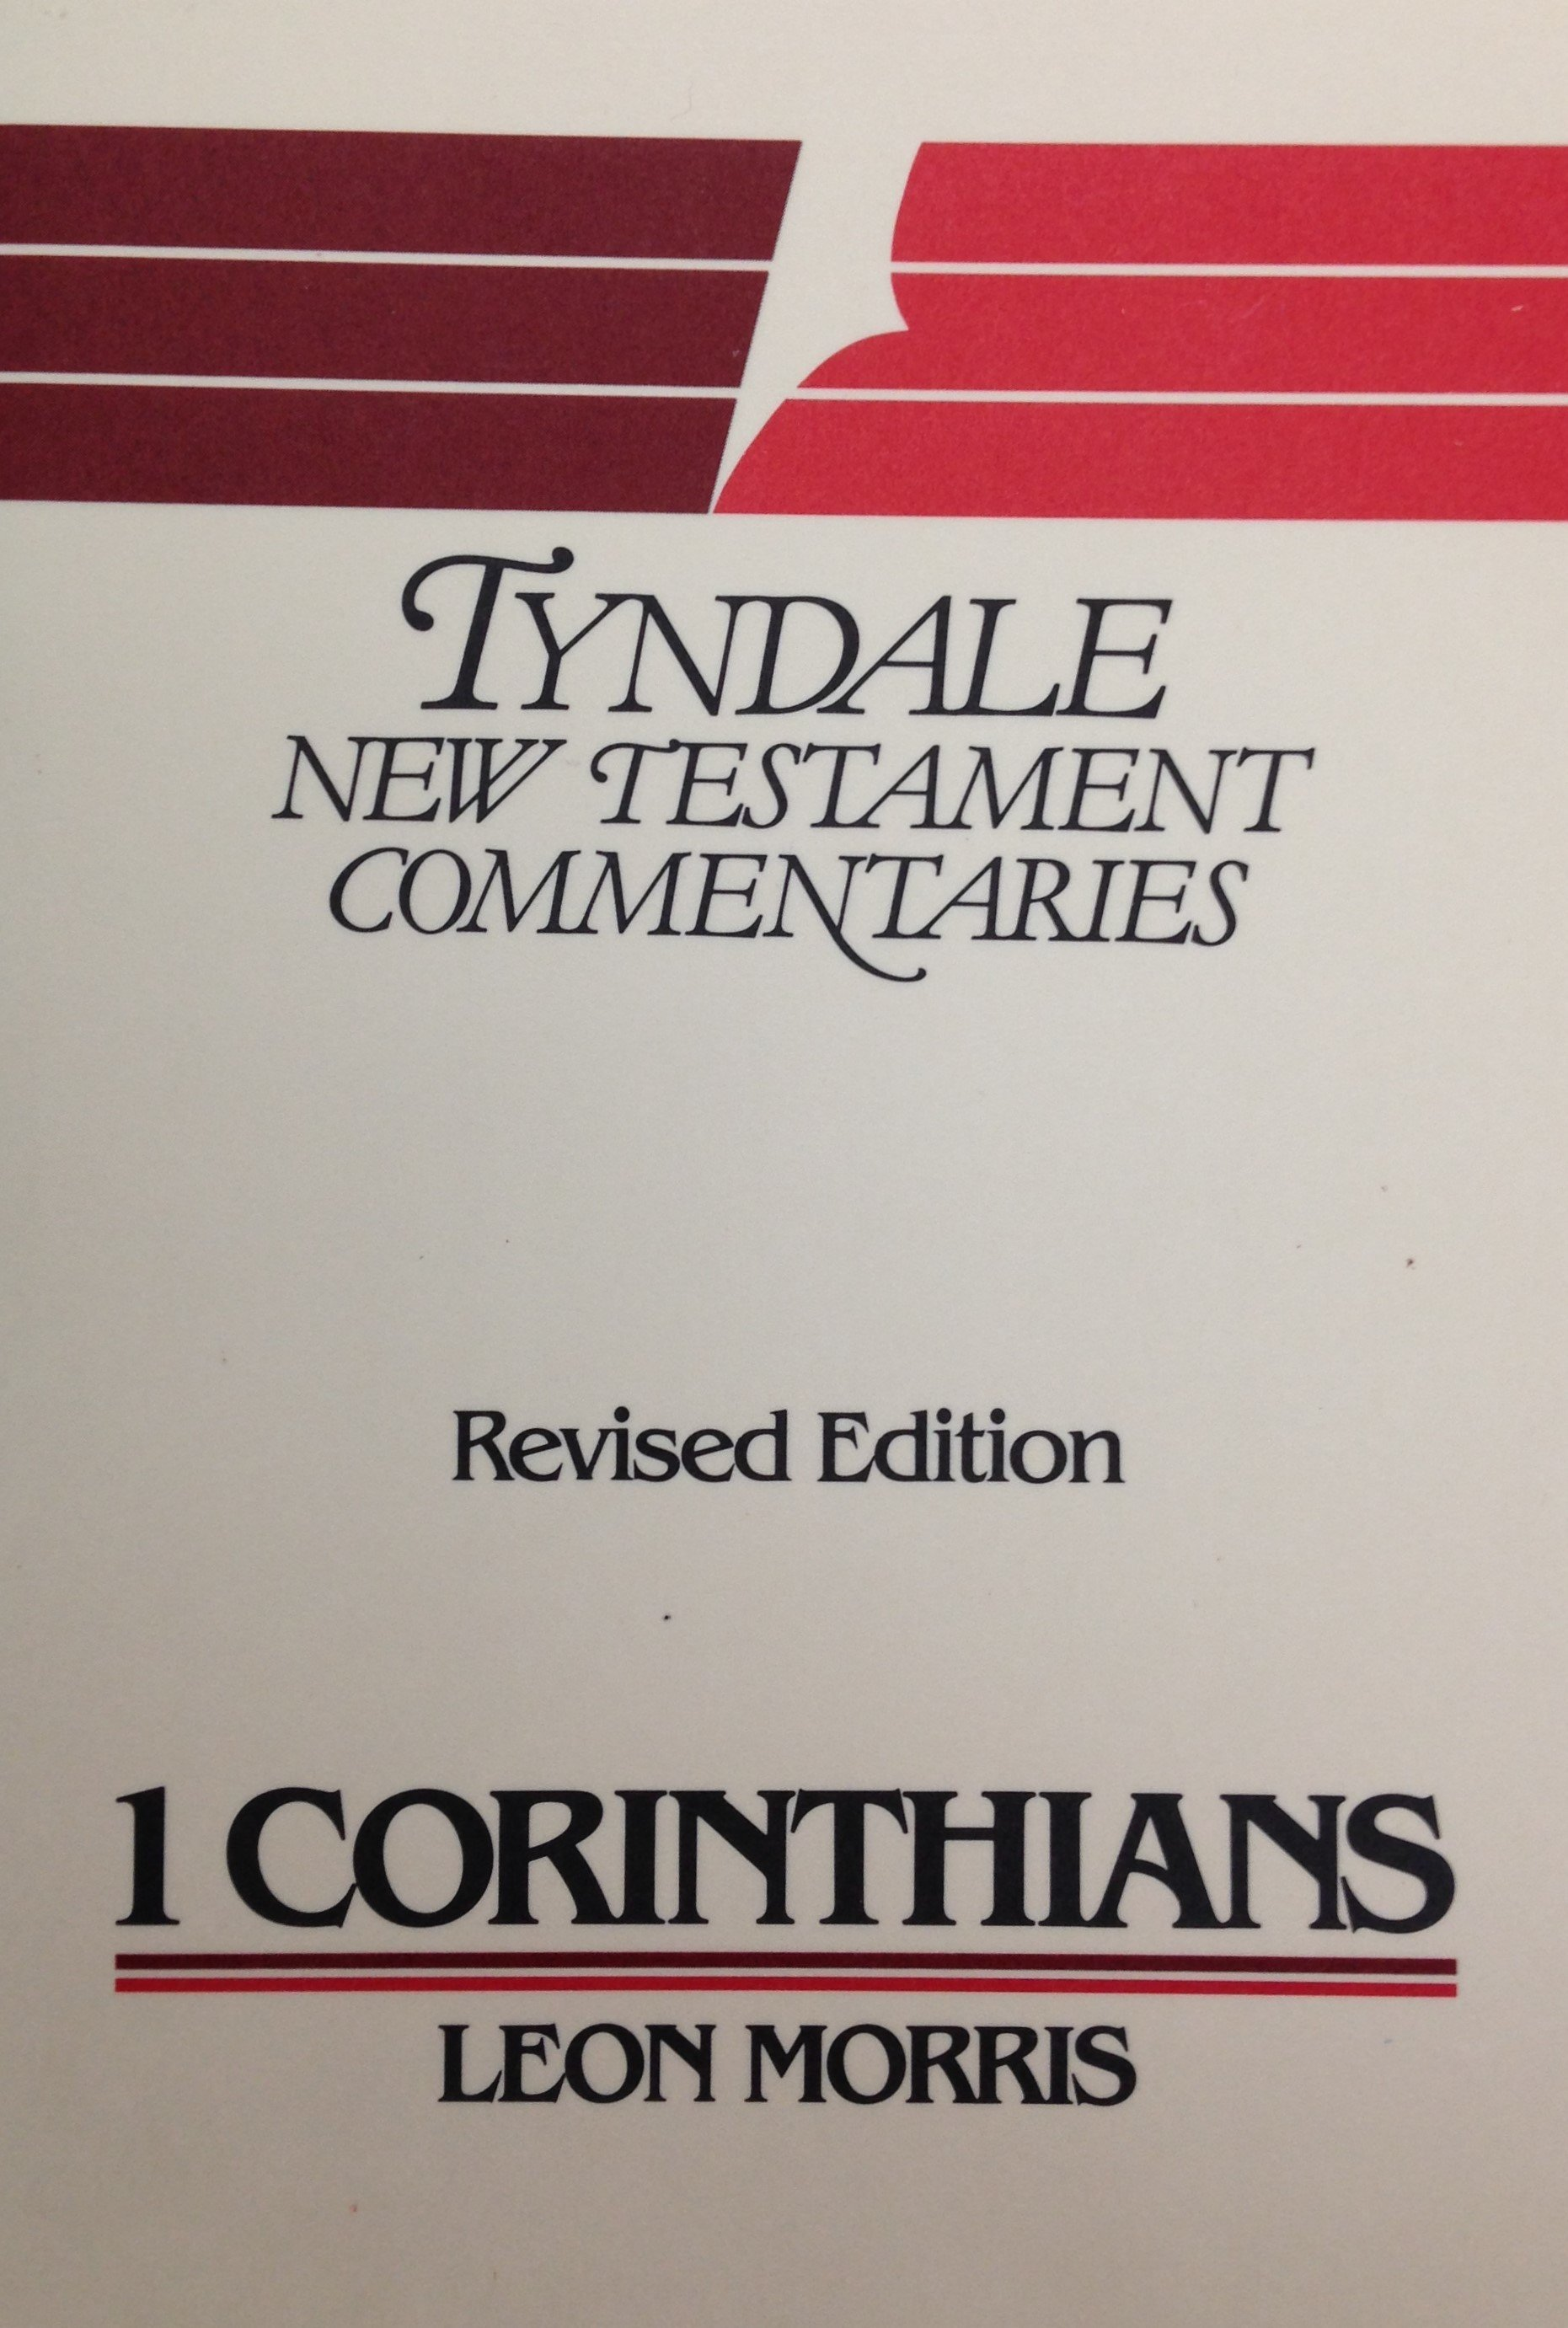 Tyndale New Testament Commentaries: I Corinthians by Leon Morris (USED) 00086